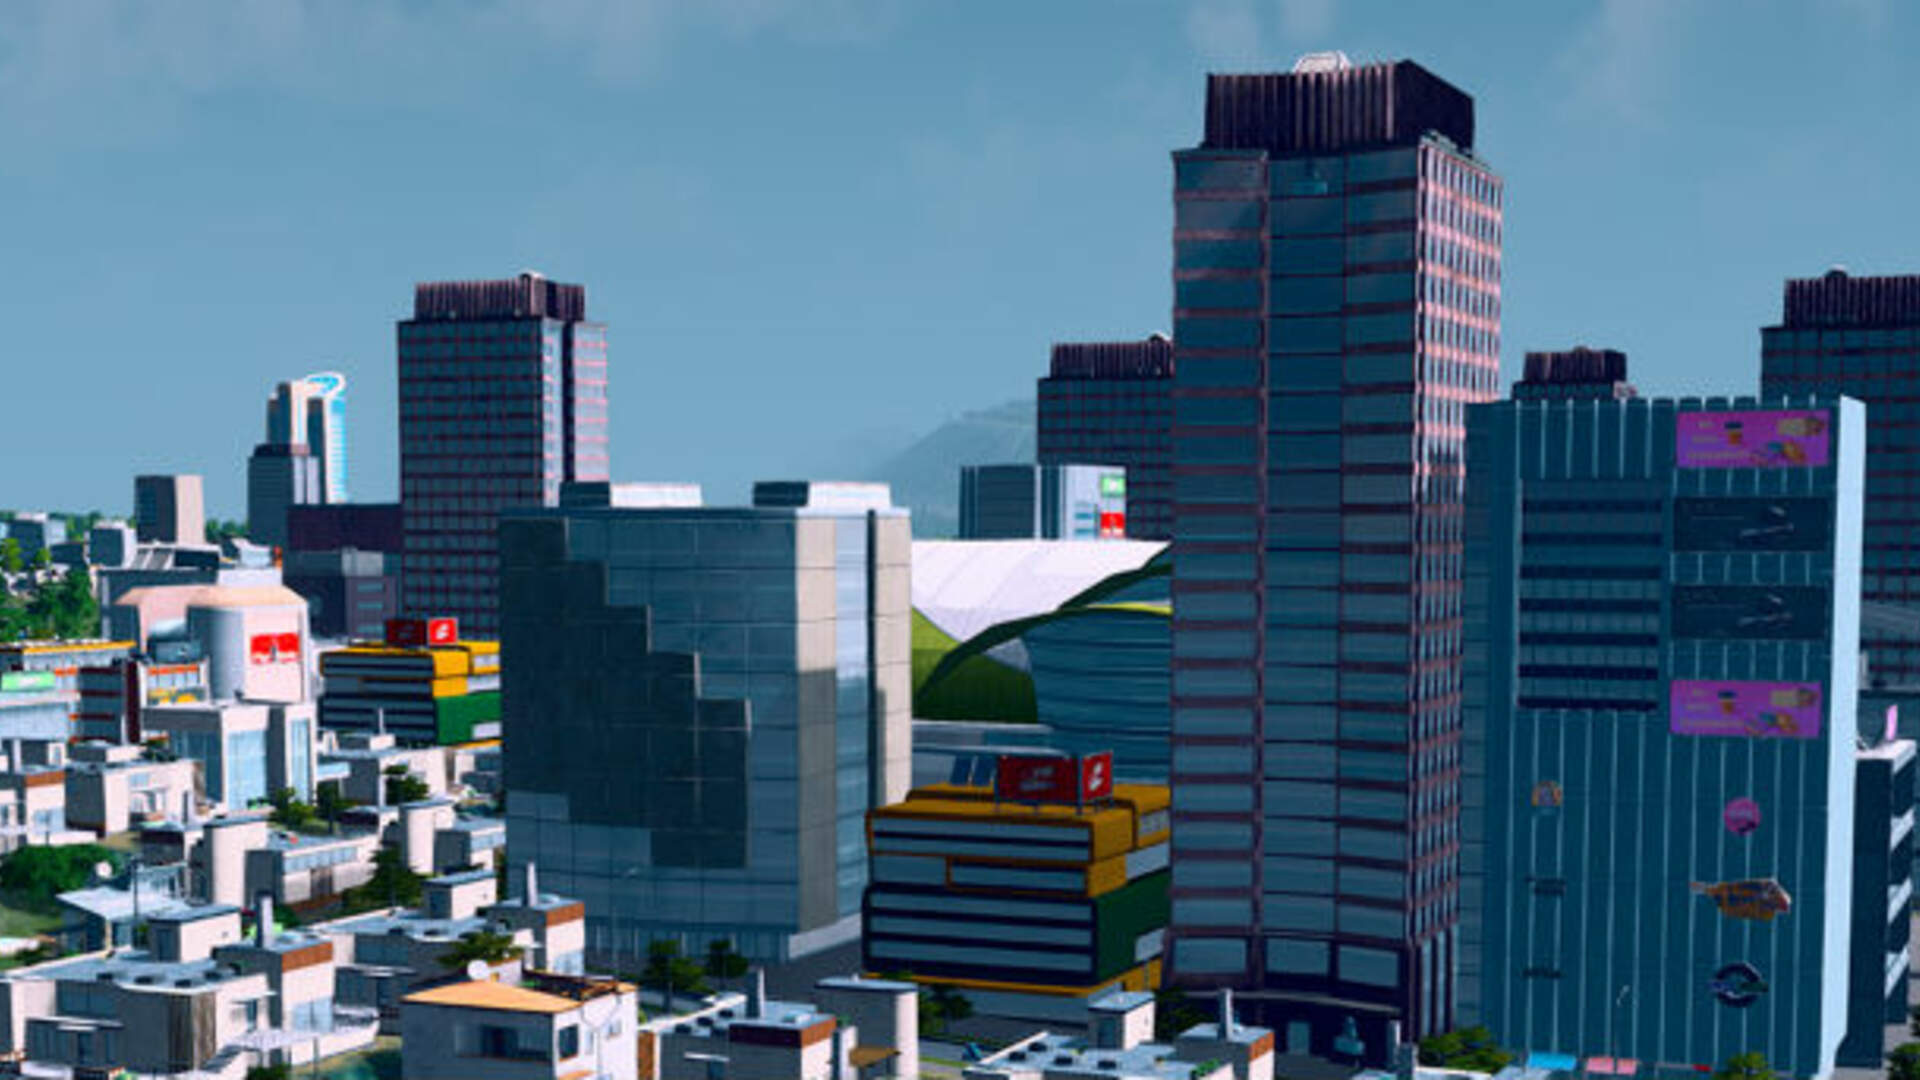 Cities: Skylines Has Sold 3.5 Million Copies, Free DLC Incoming